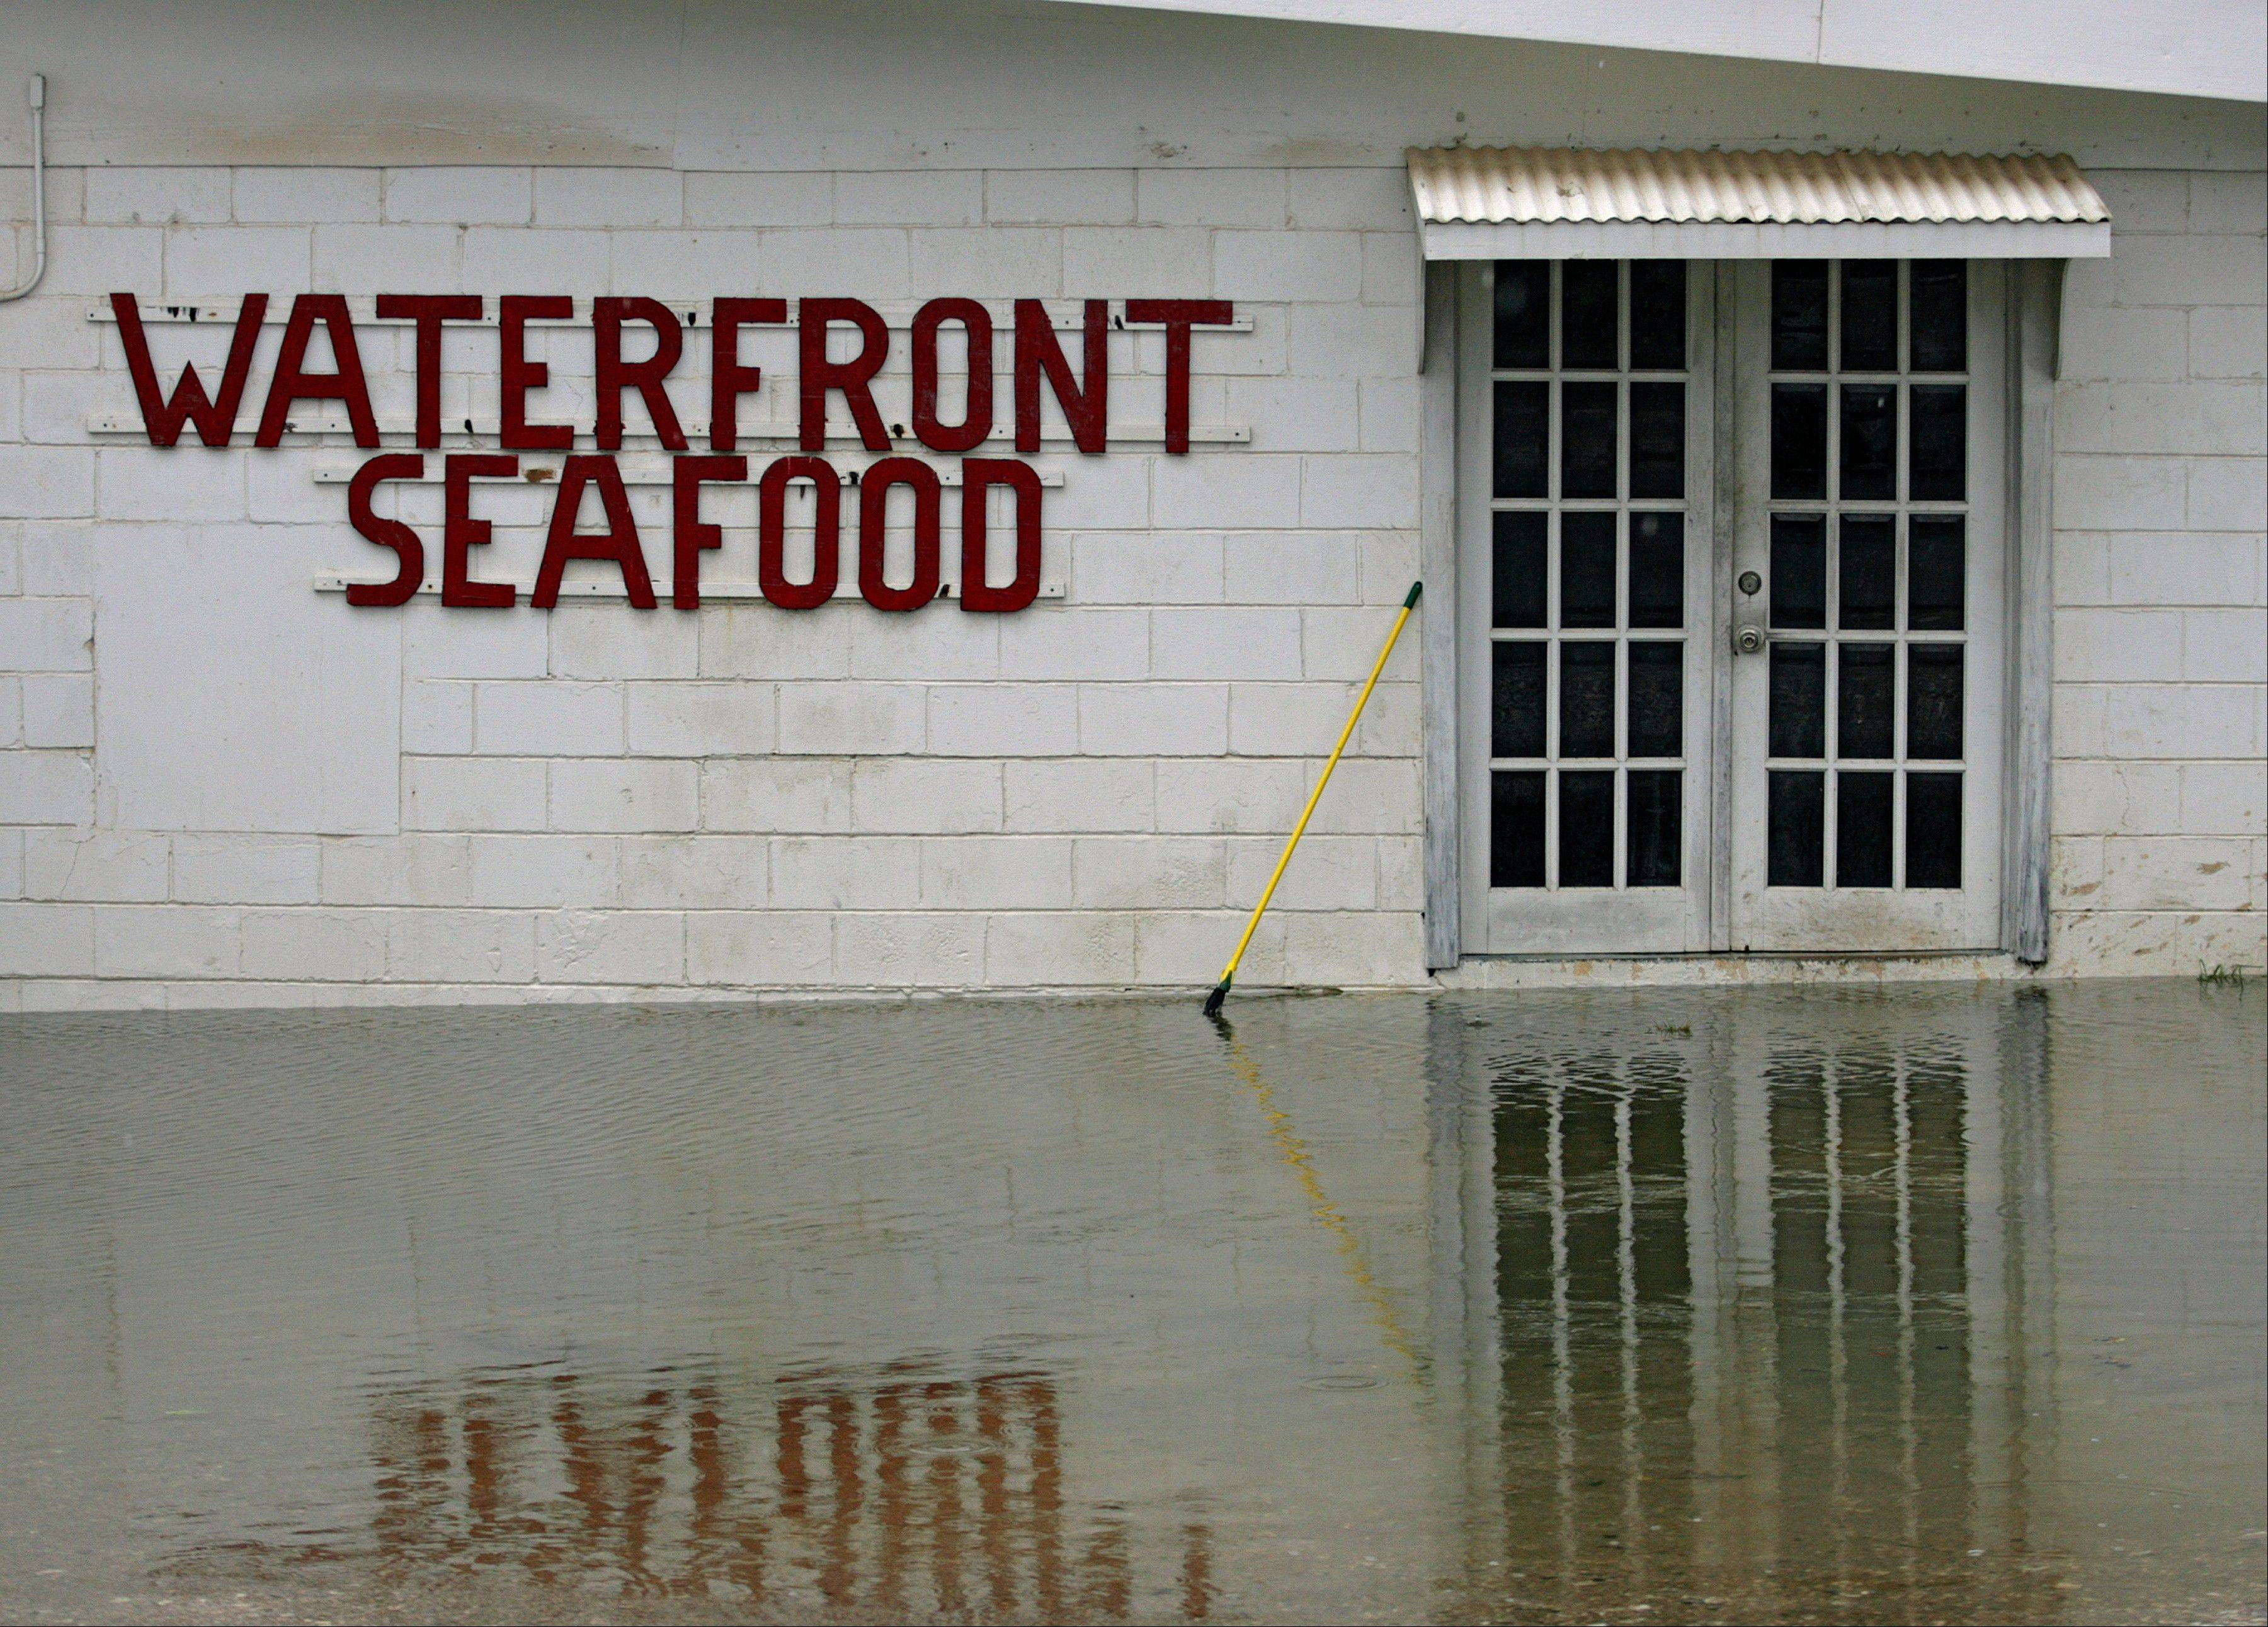 The waters of Bayou La Batre surround the front doors of Waterfront Seafood Tuesday, Aug. 28, 2012 in Bayou La Batre, Ala.